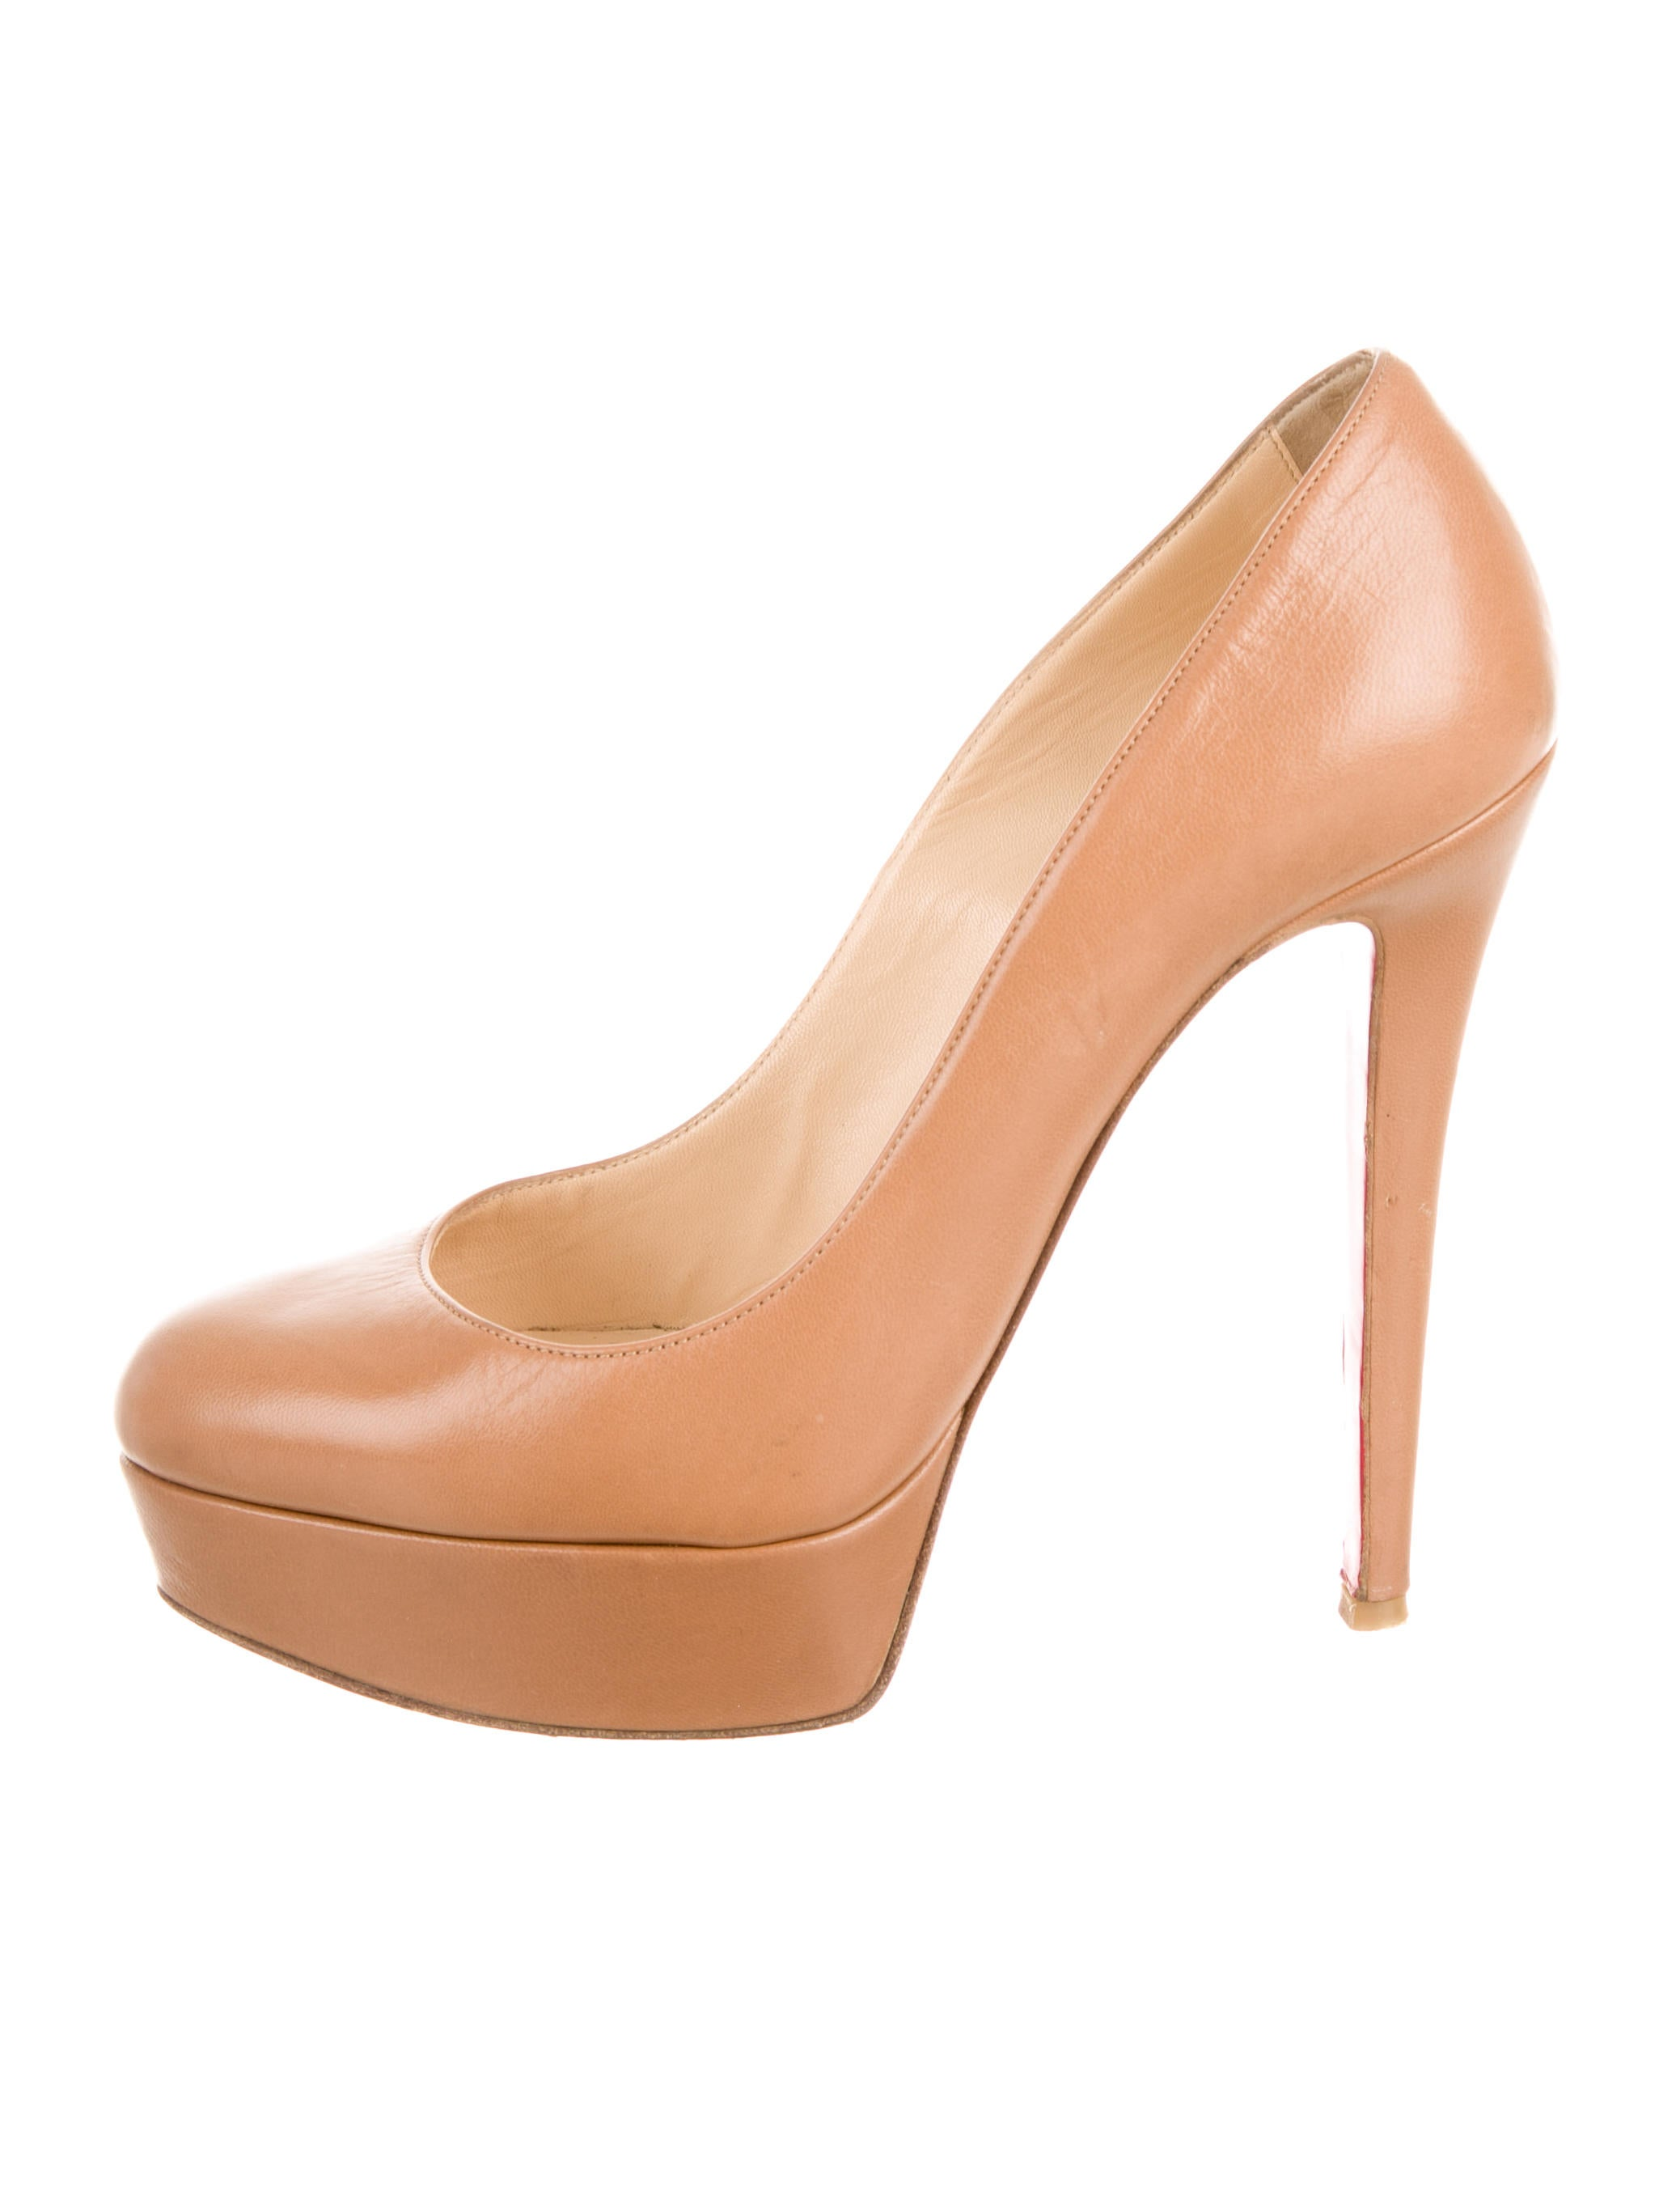 Christian Louboutin Leather Round-Toe Pumps - Shoes - CHT42977 ...